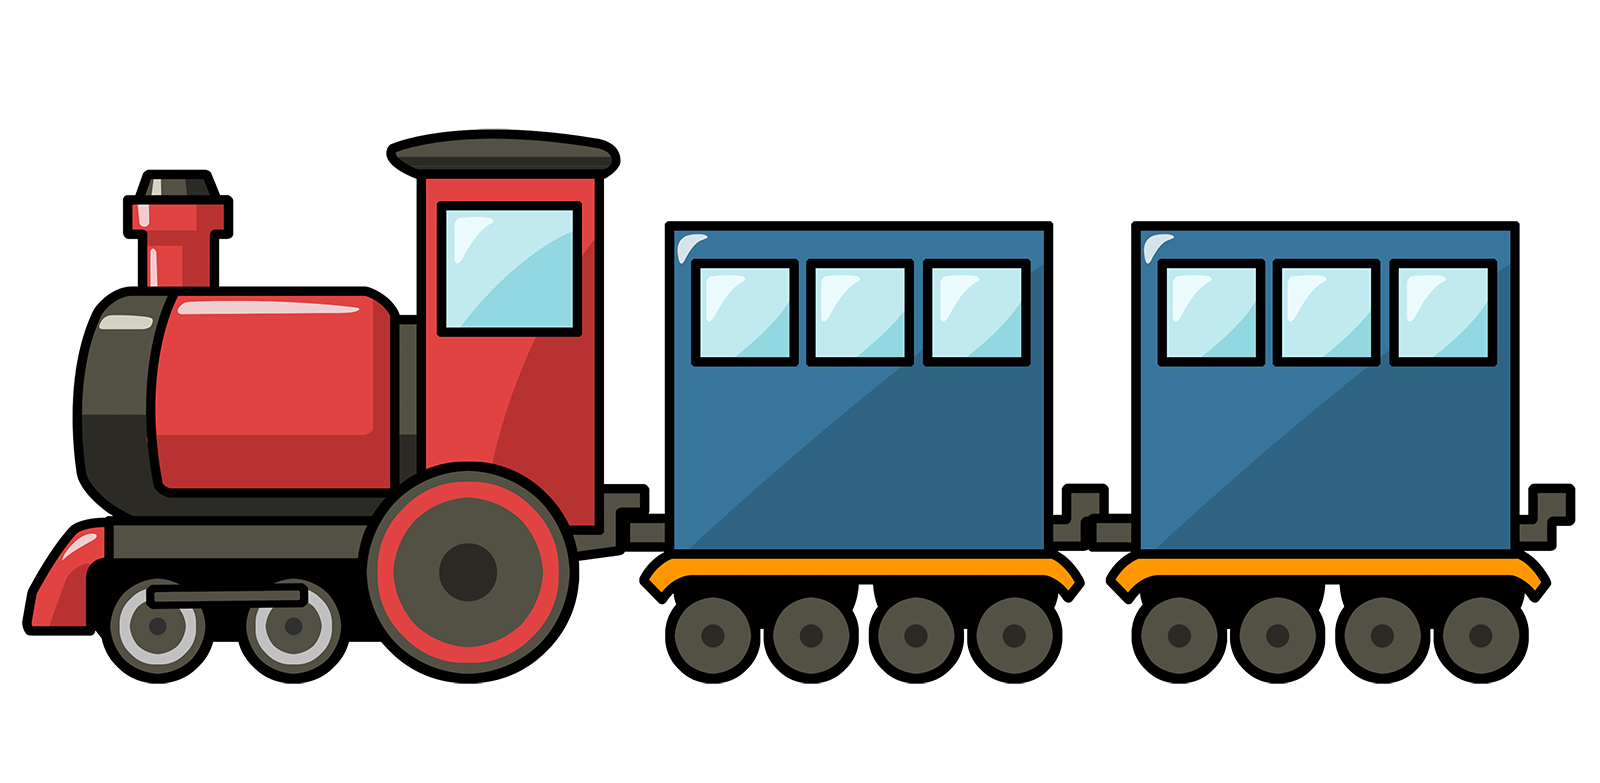 Railways clipart cartoon #7